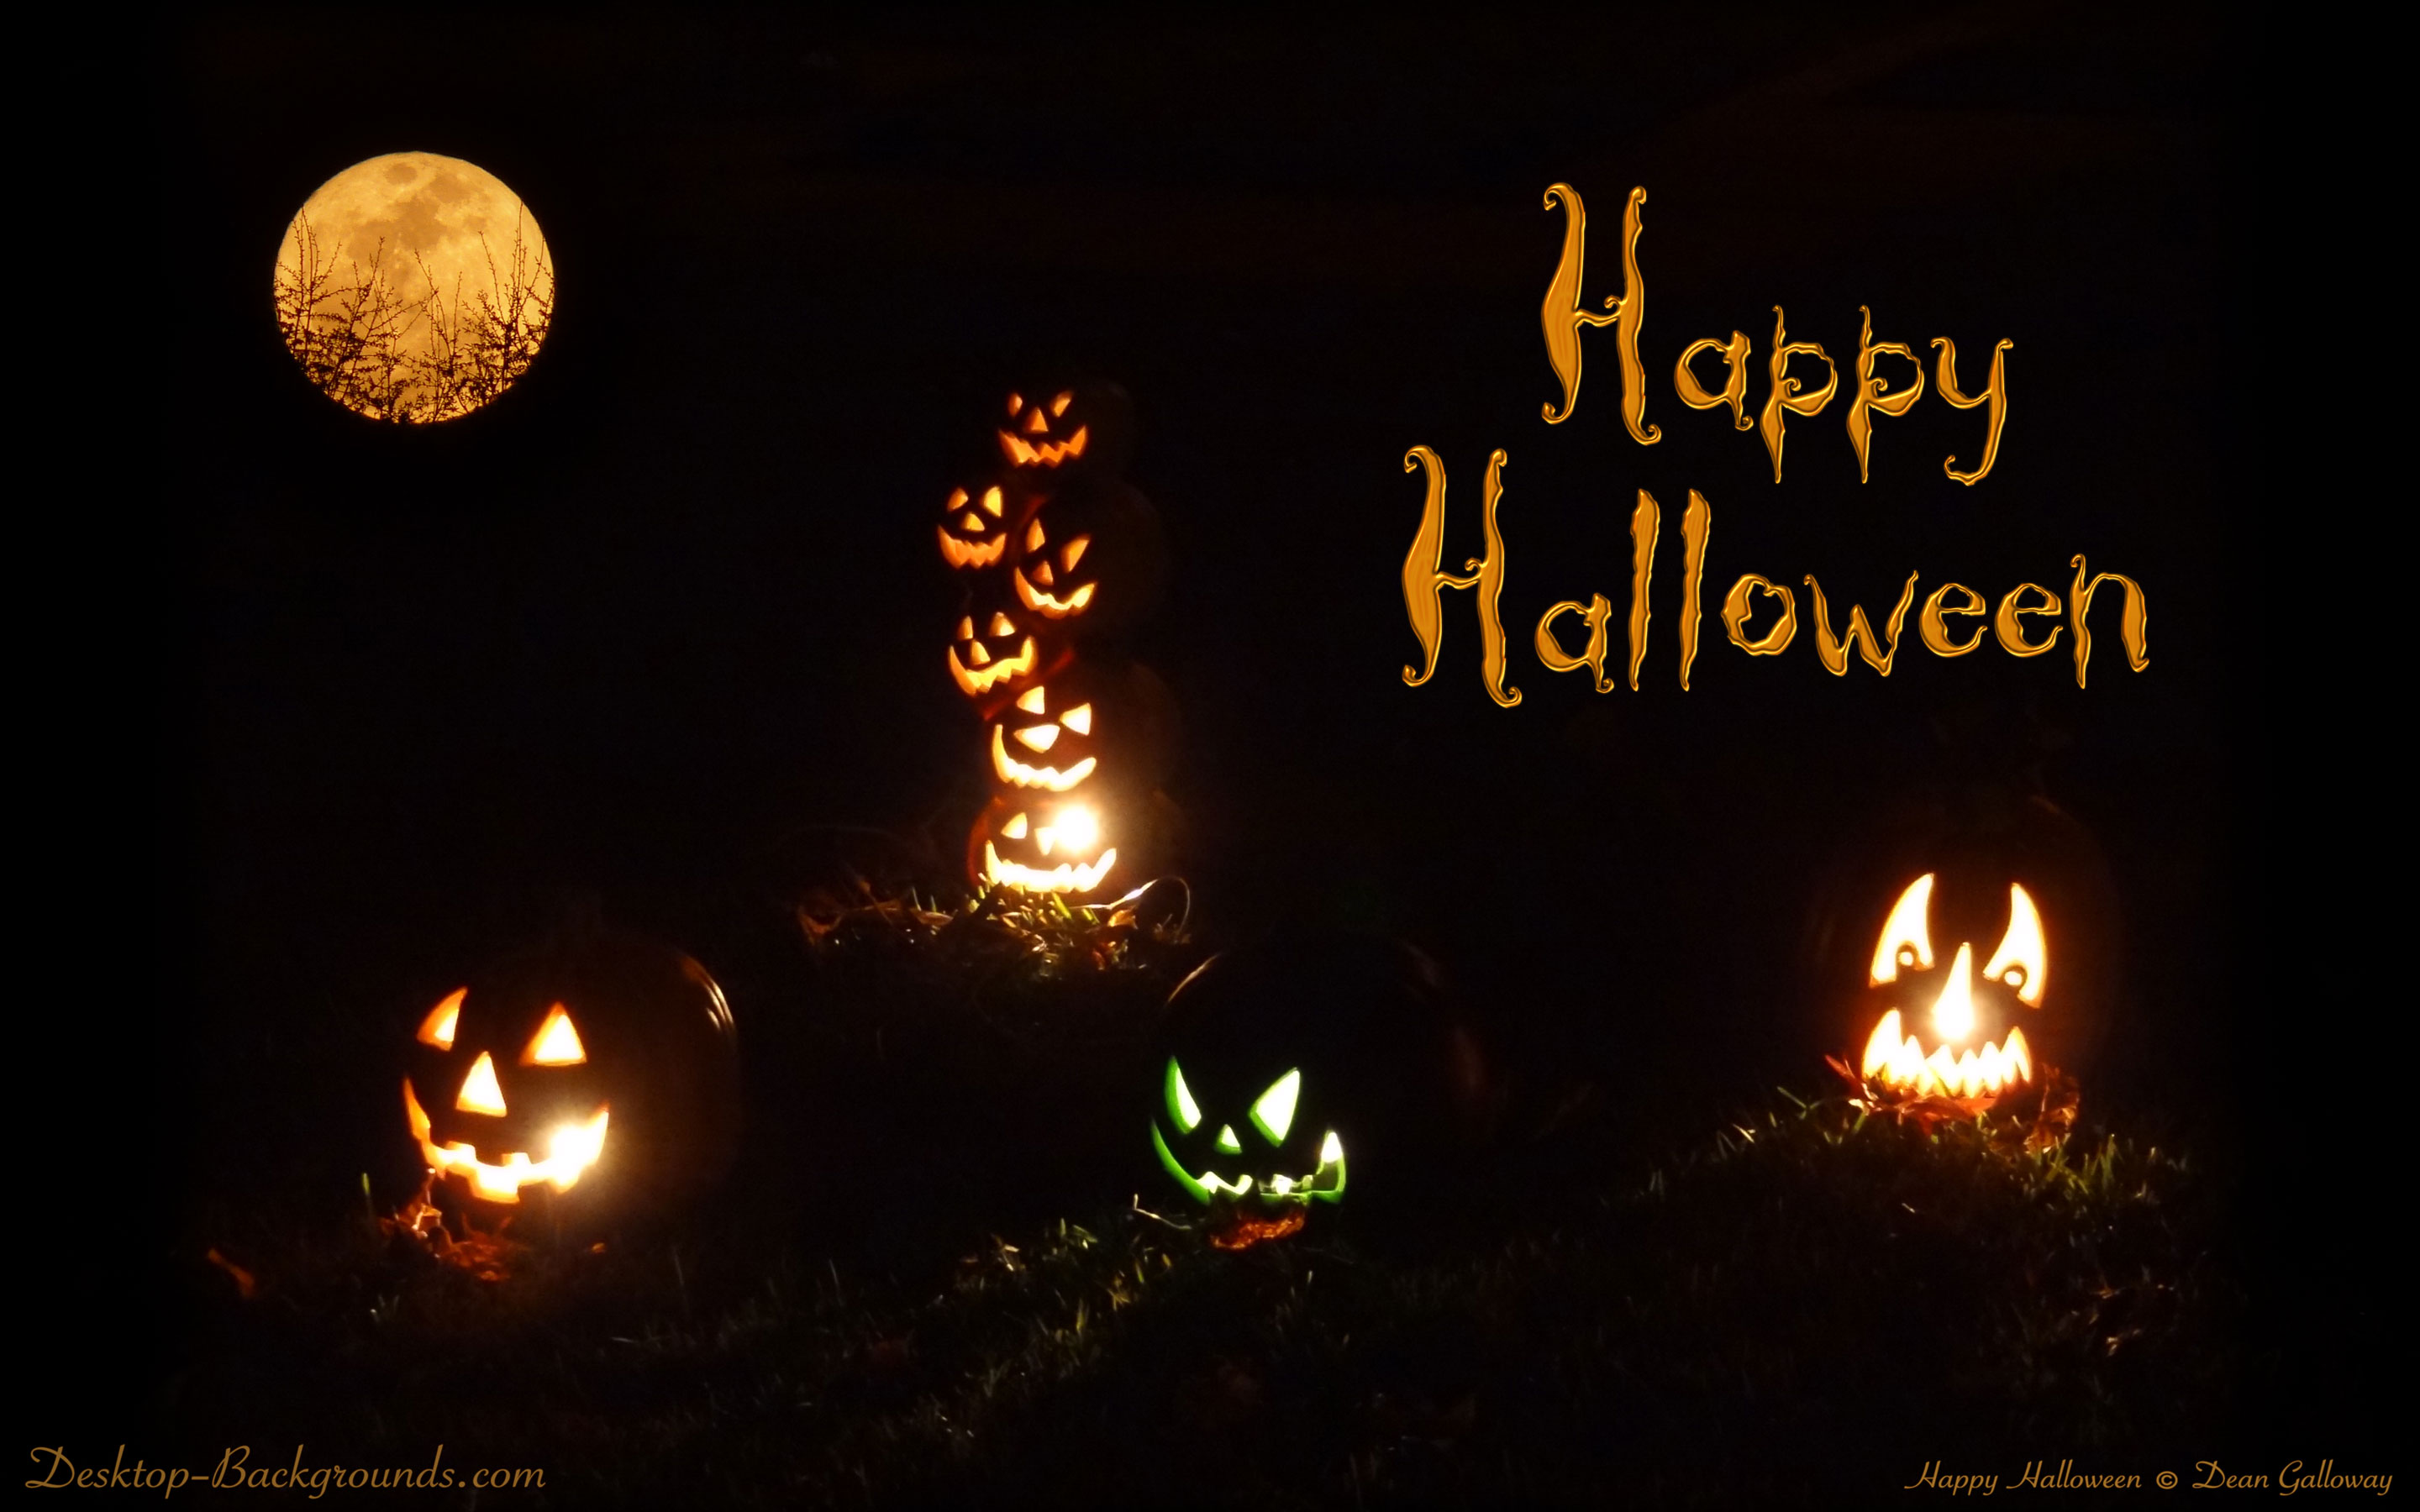 Halloween wallpapers go below and download Halloween wallpapers 2880x1800